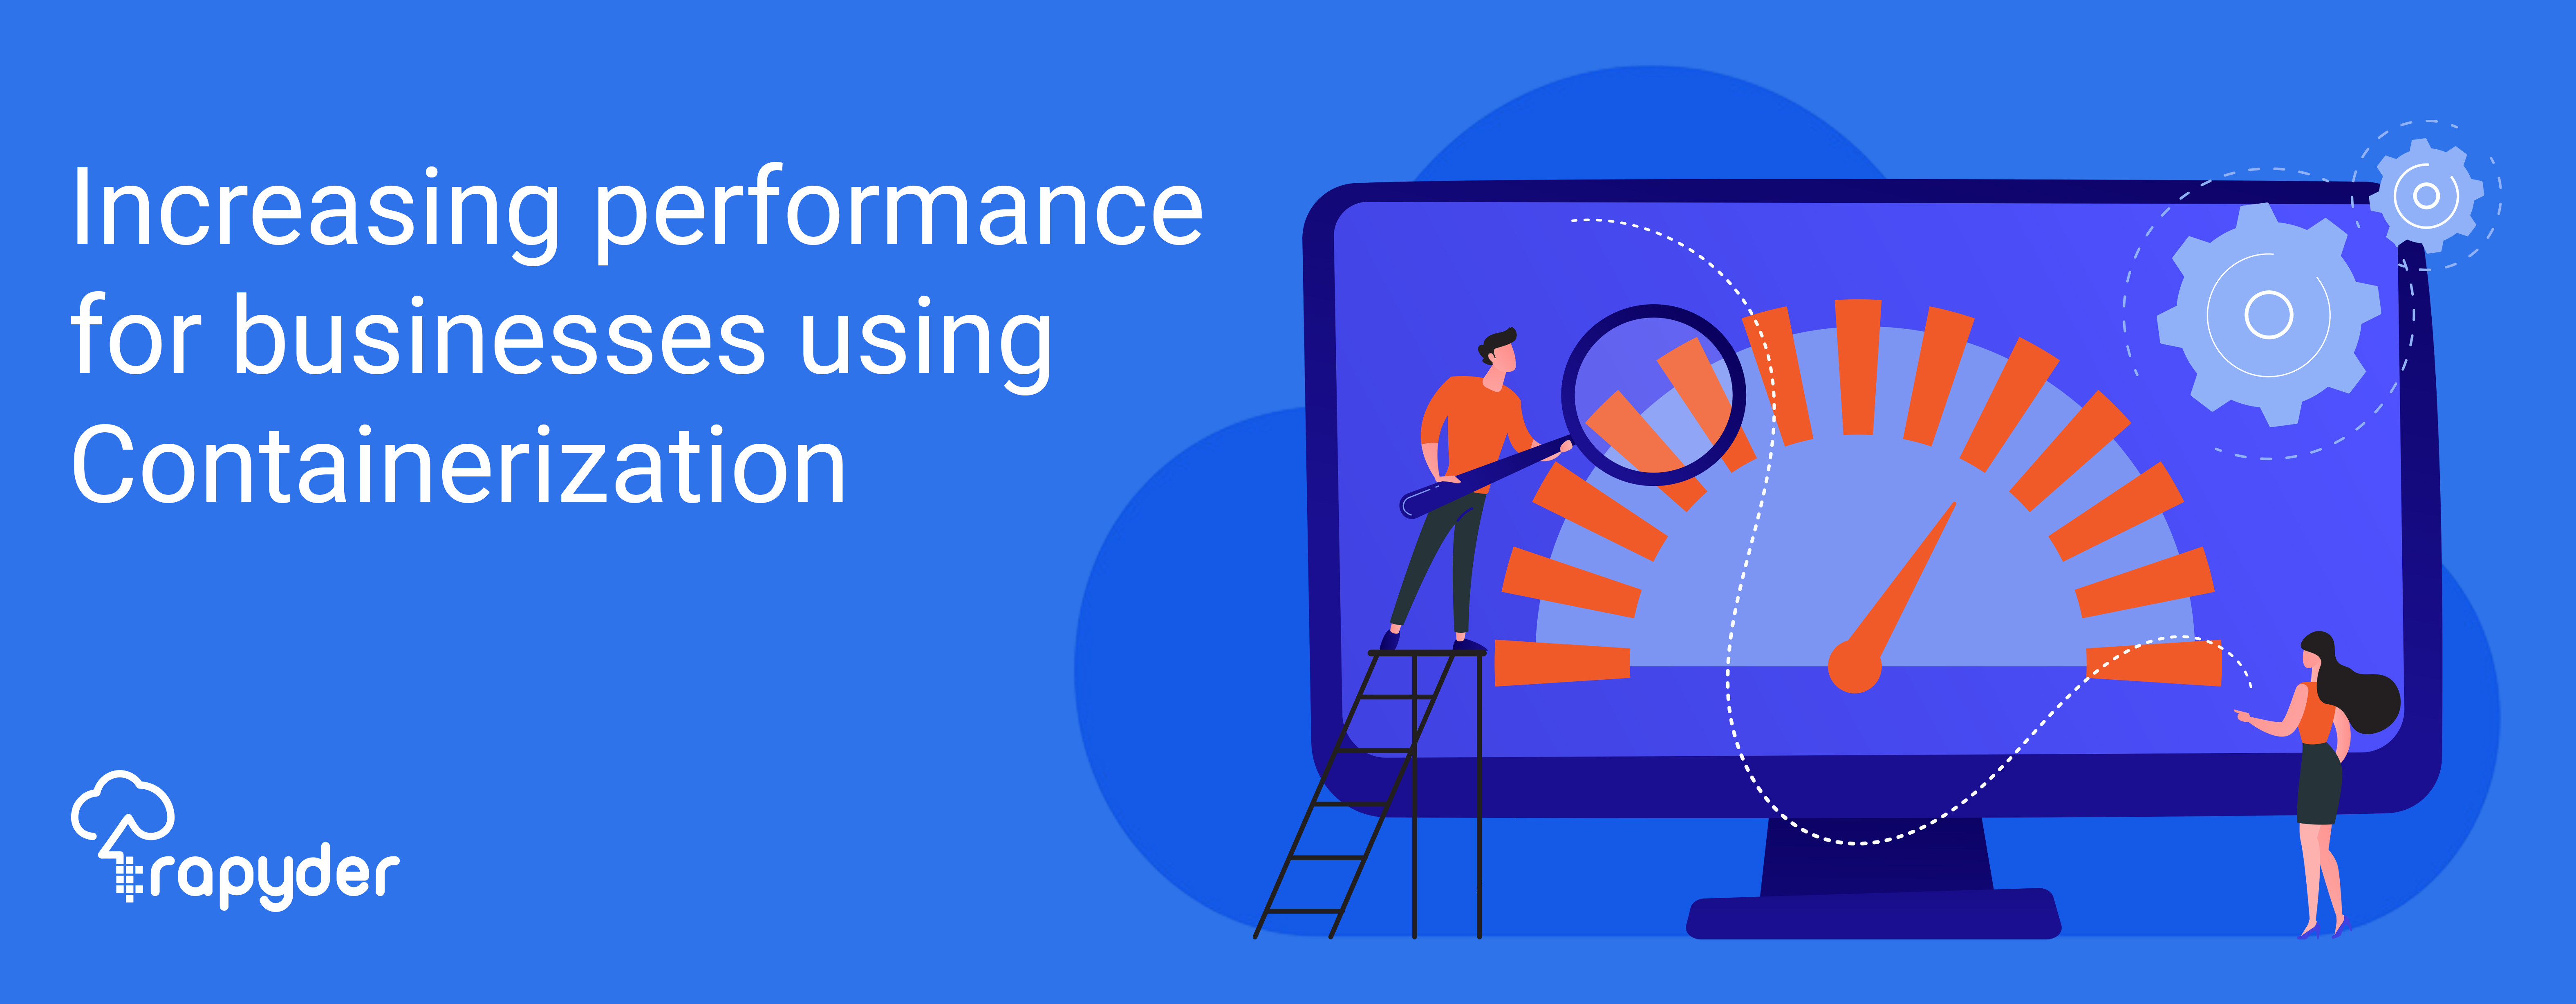 Increasing performance for businesses using Containerization